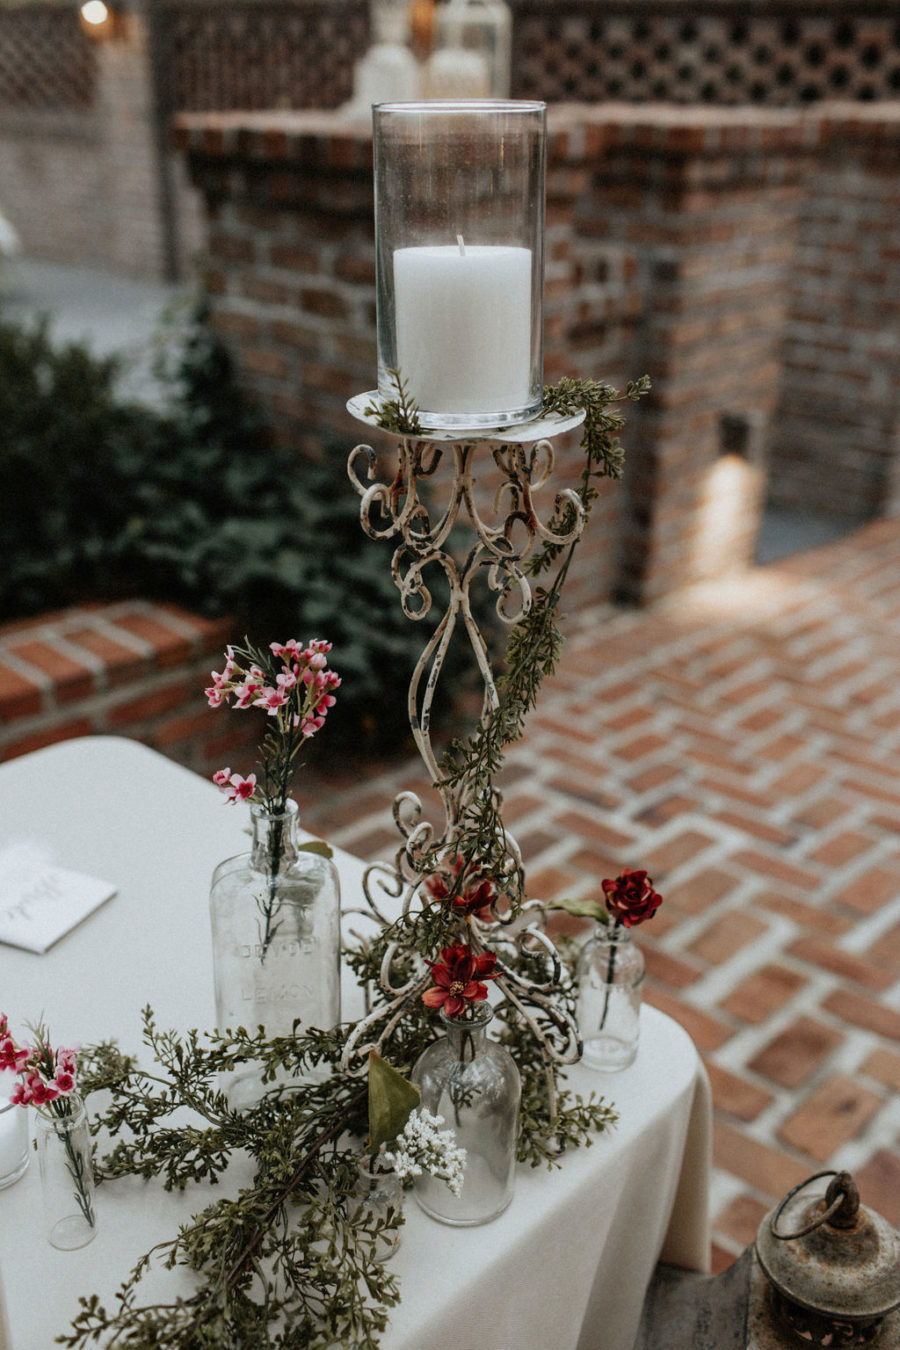 Wedding candle decor: Magical Winter Wedding by Meghan Melia Photography featured on Nashville Bride Guide!